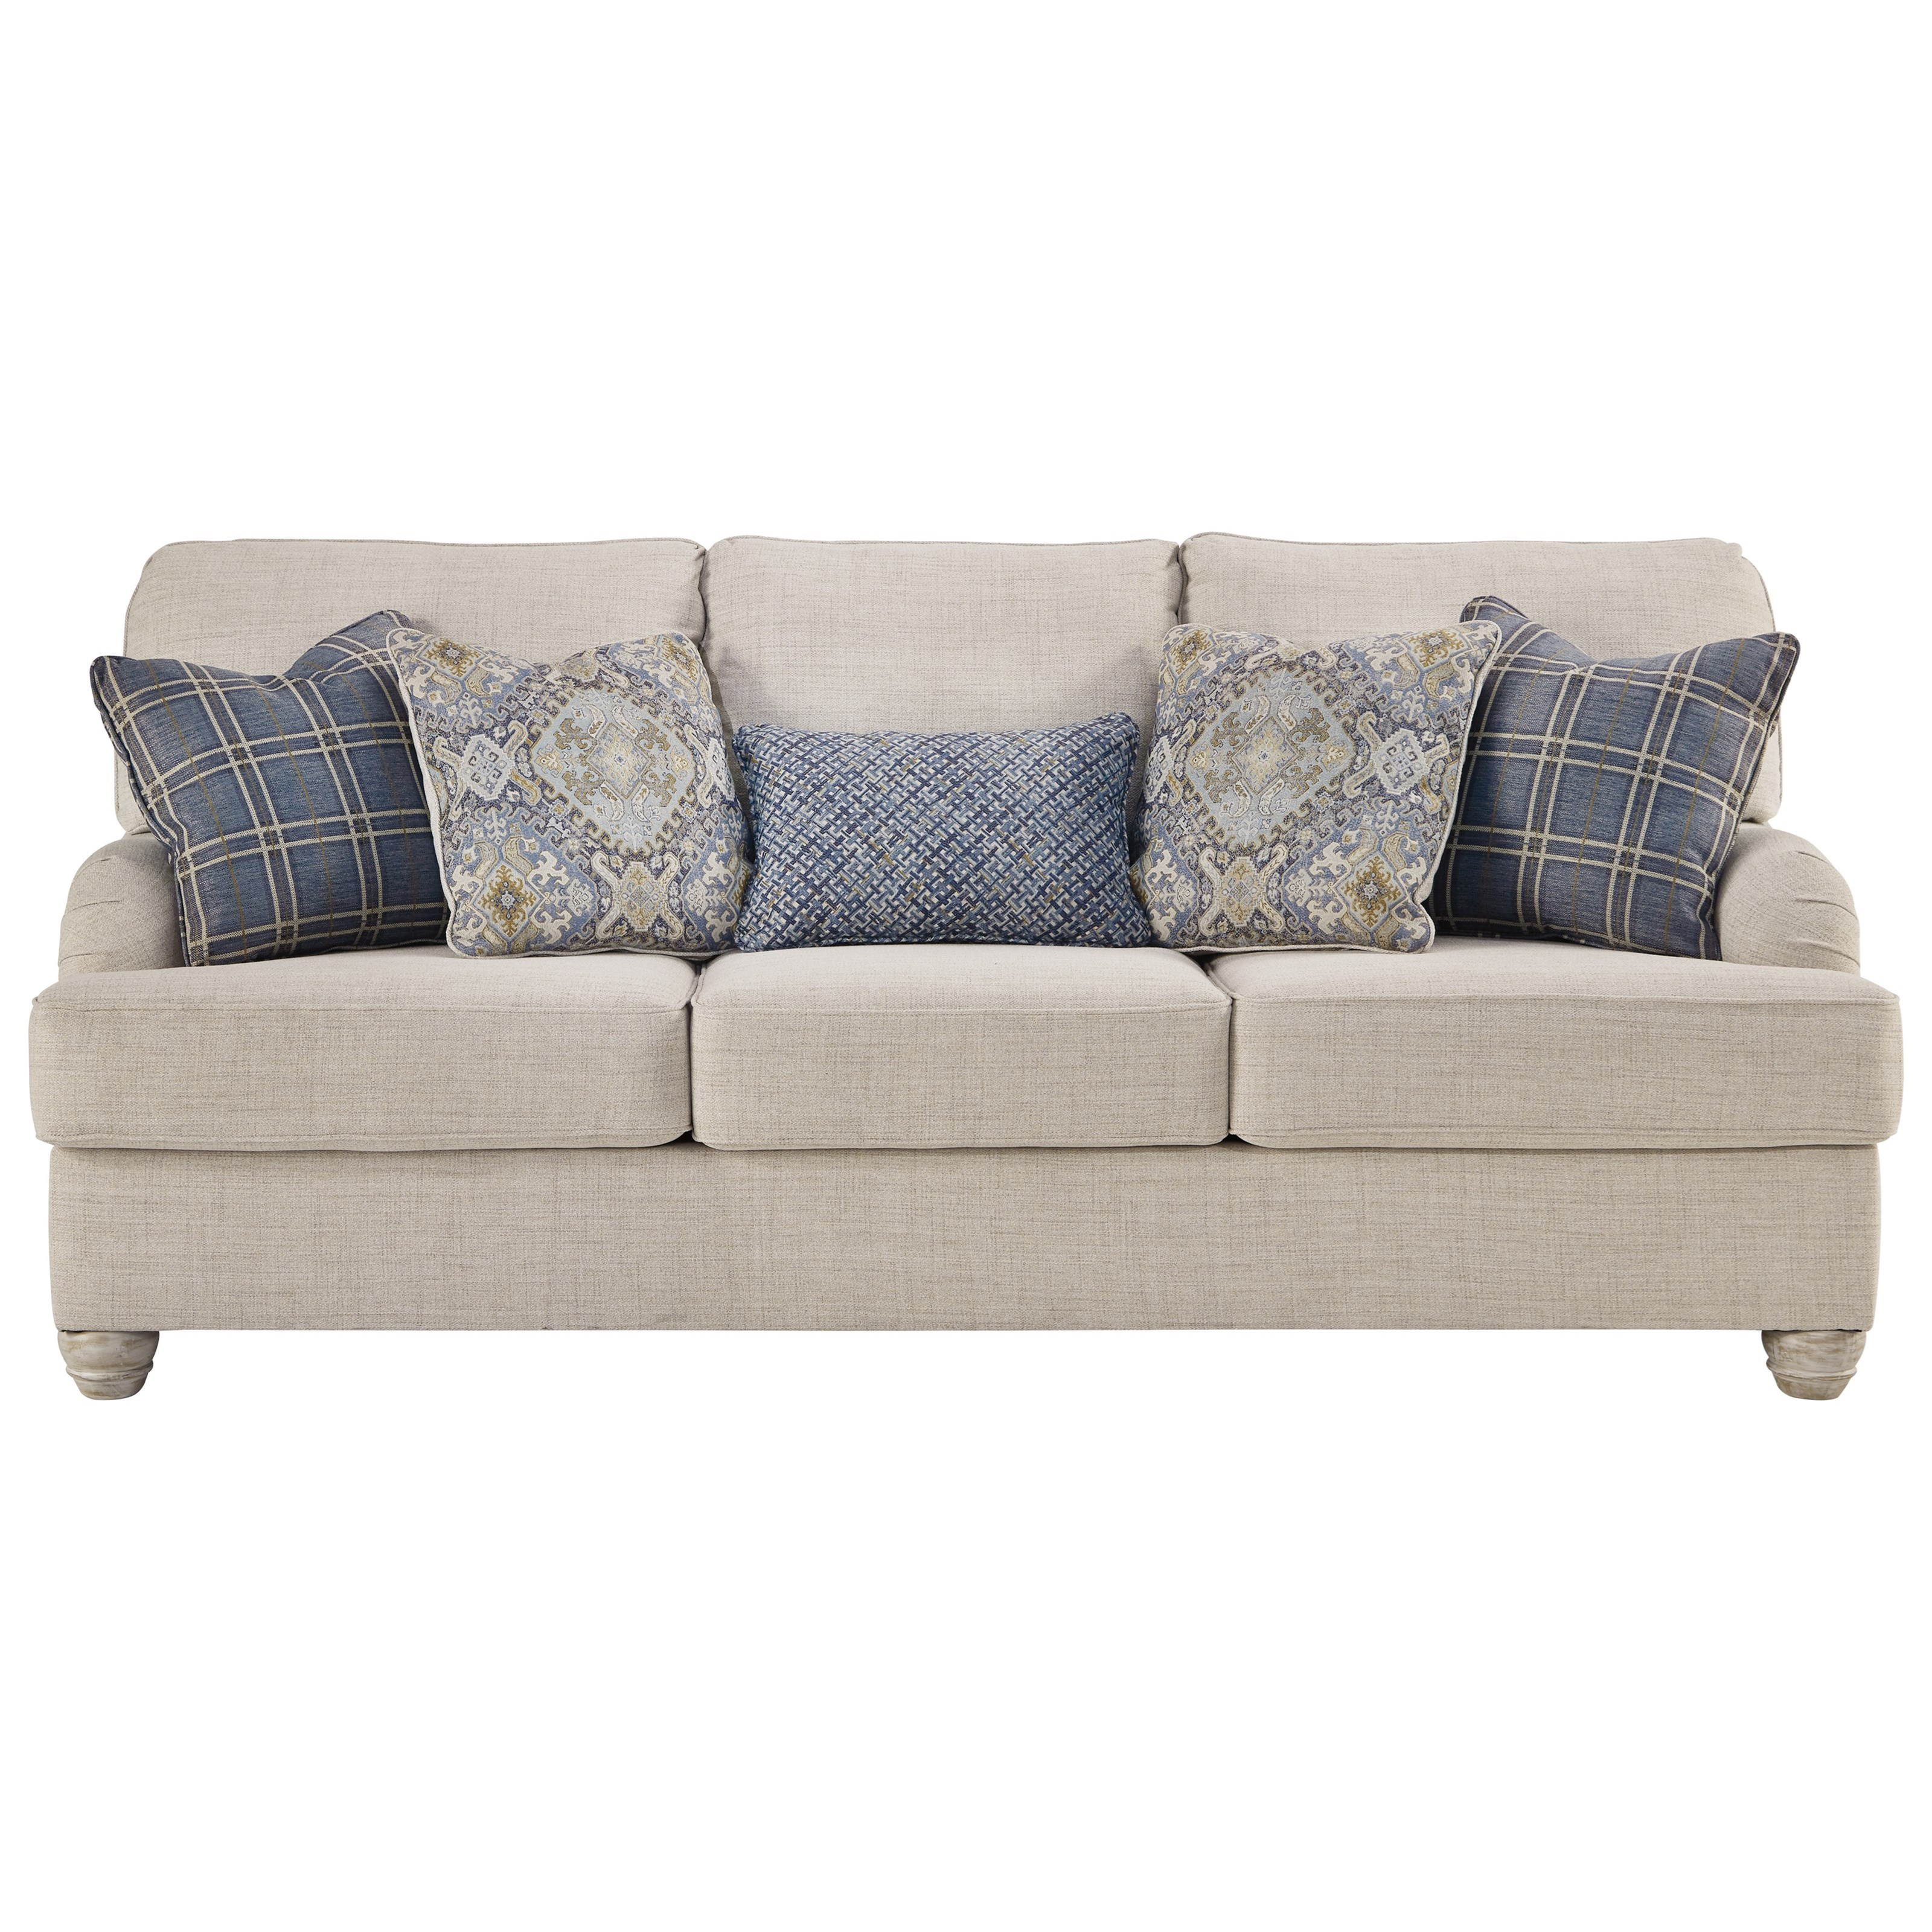 Benchcraft By Ashley Traemore Transitional Sofa With